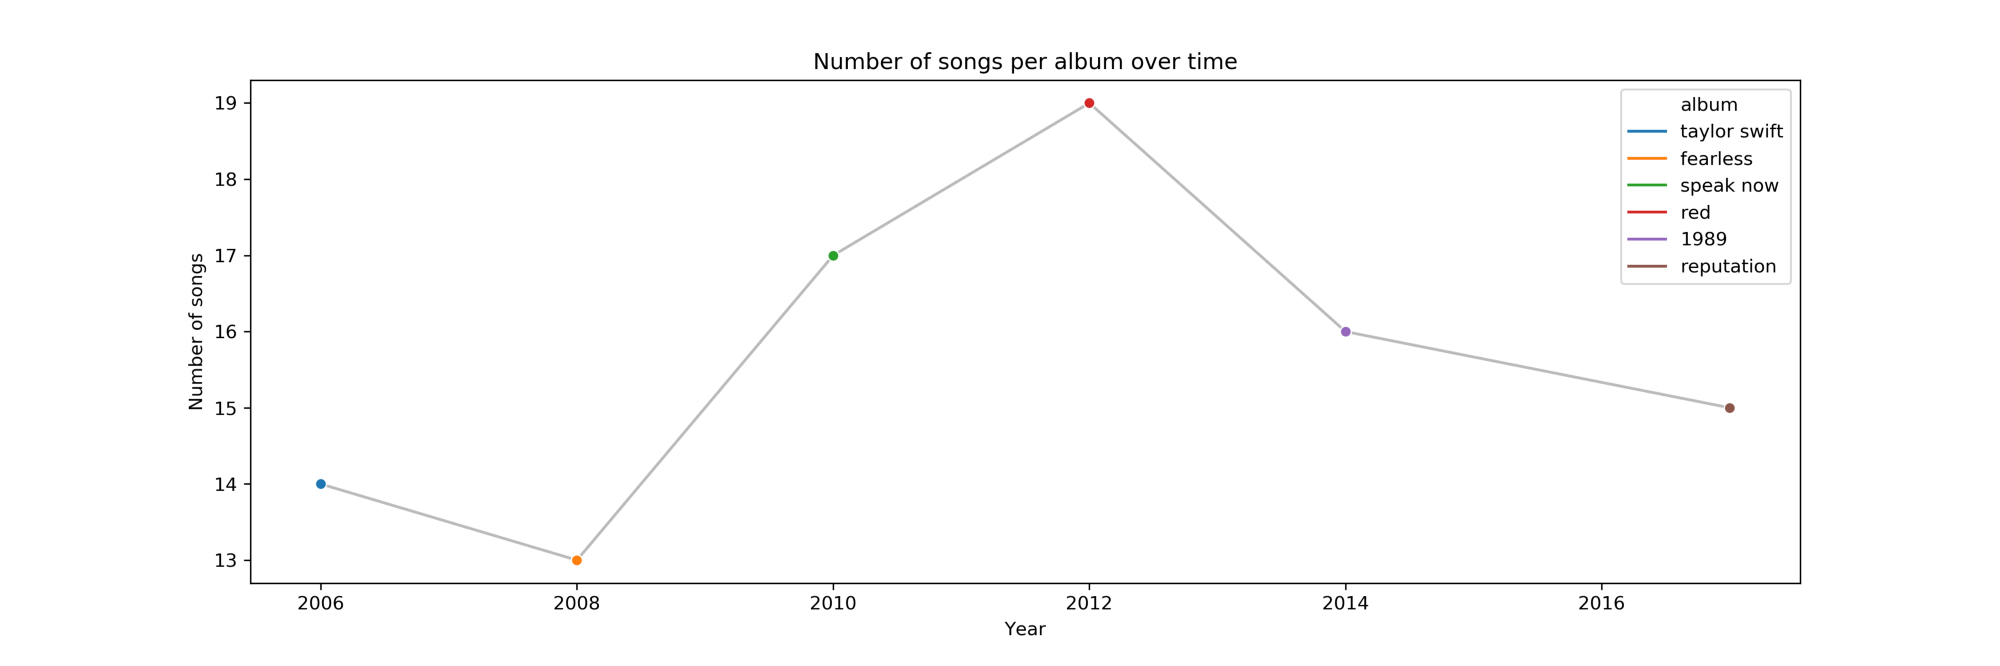 A Swift look at Taylor's music over the years - Louwrens - Medium